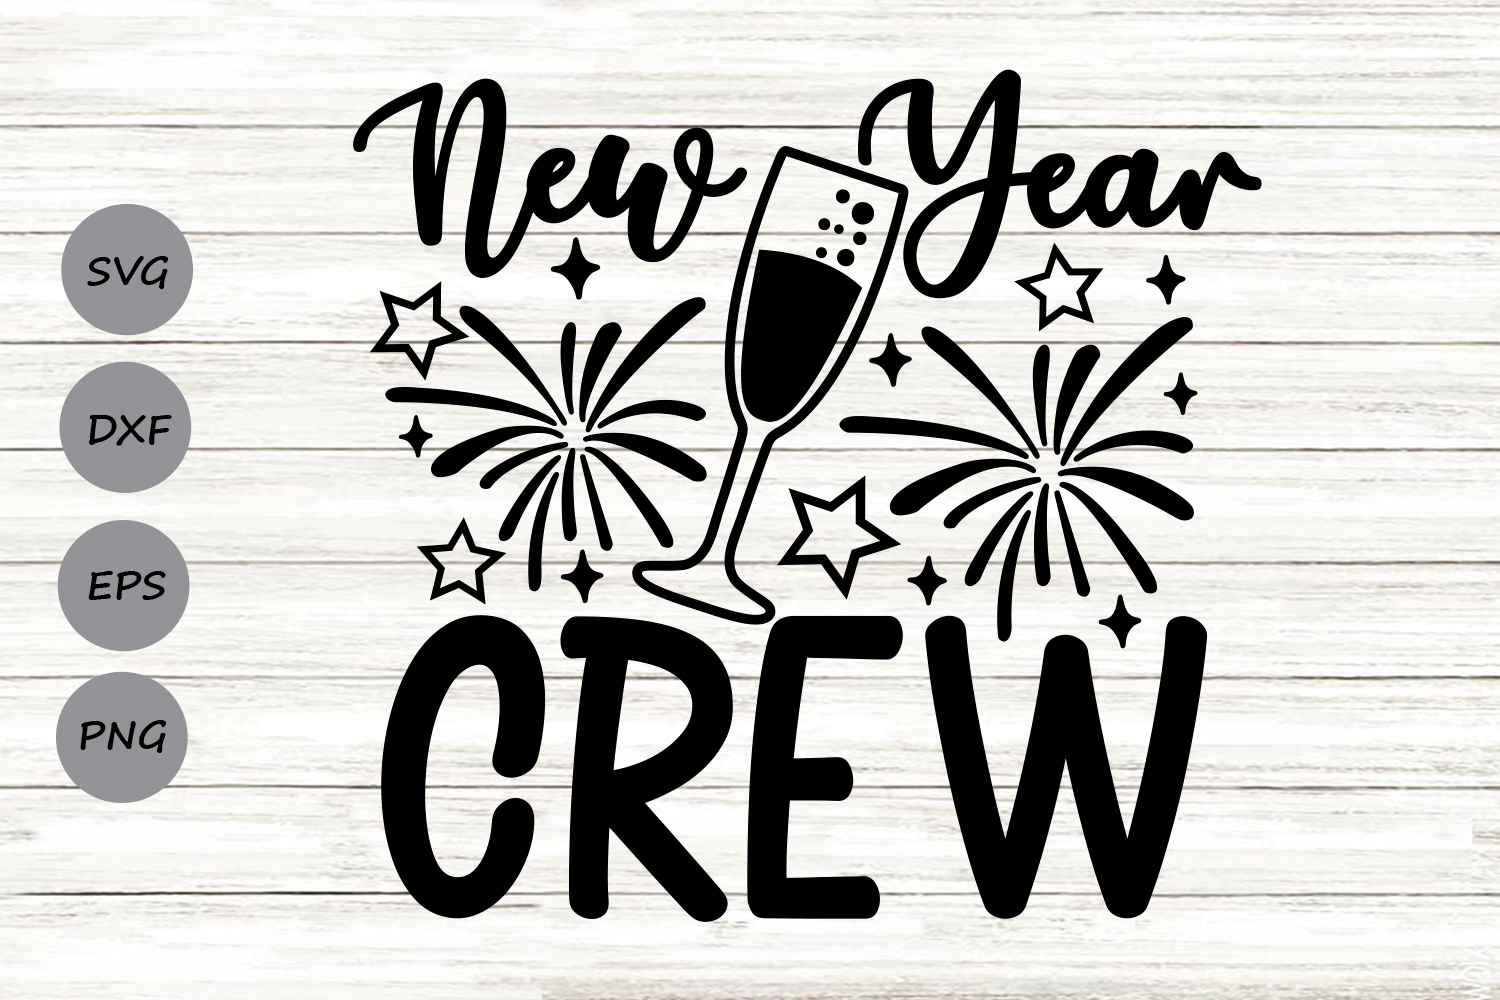 Download Free New Year Crew Graphic By Cosmosfineart Creative Fabrica for Cricut Explore, Silhouette and other cutting machines.